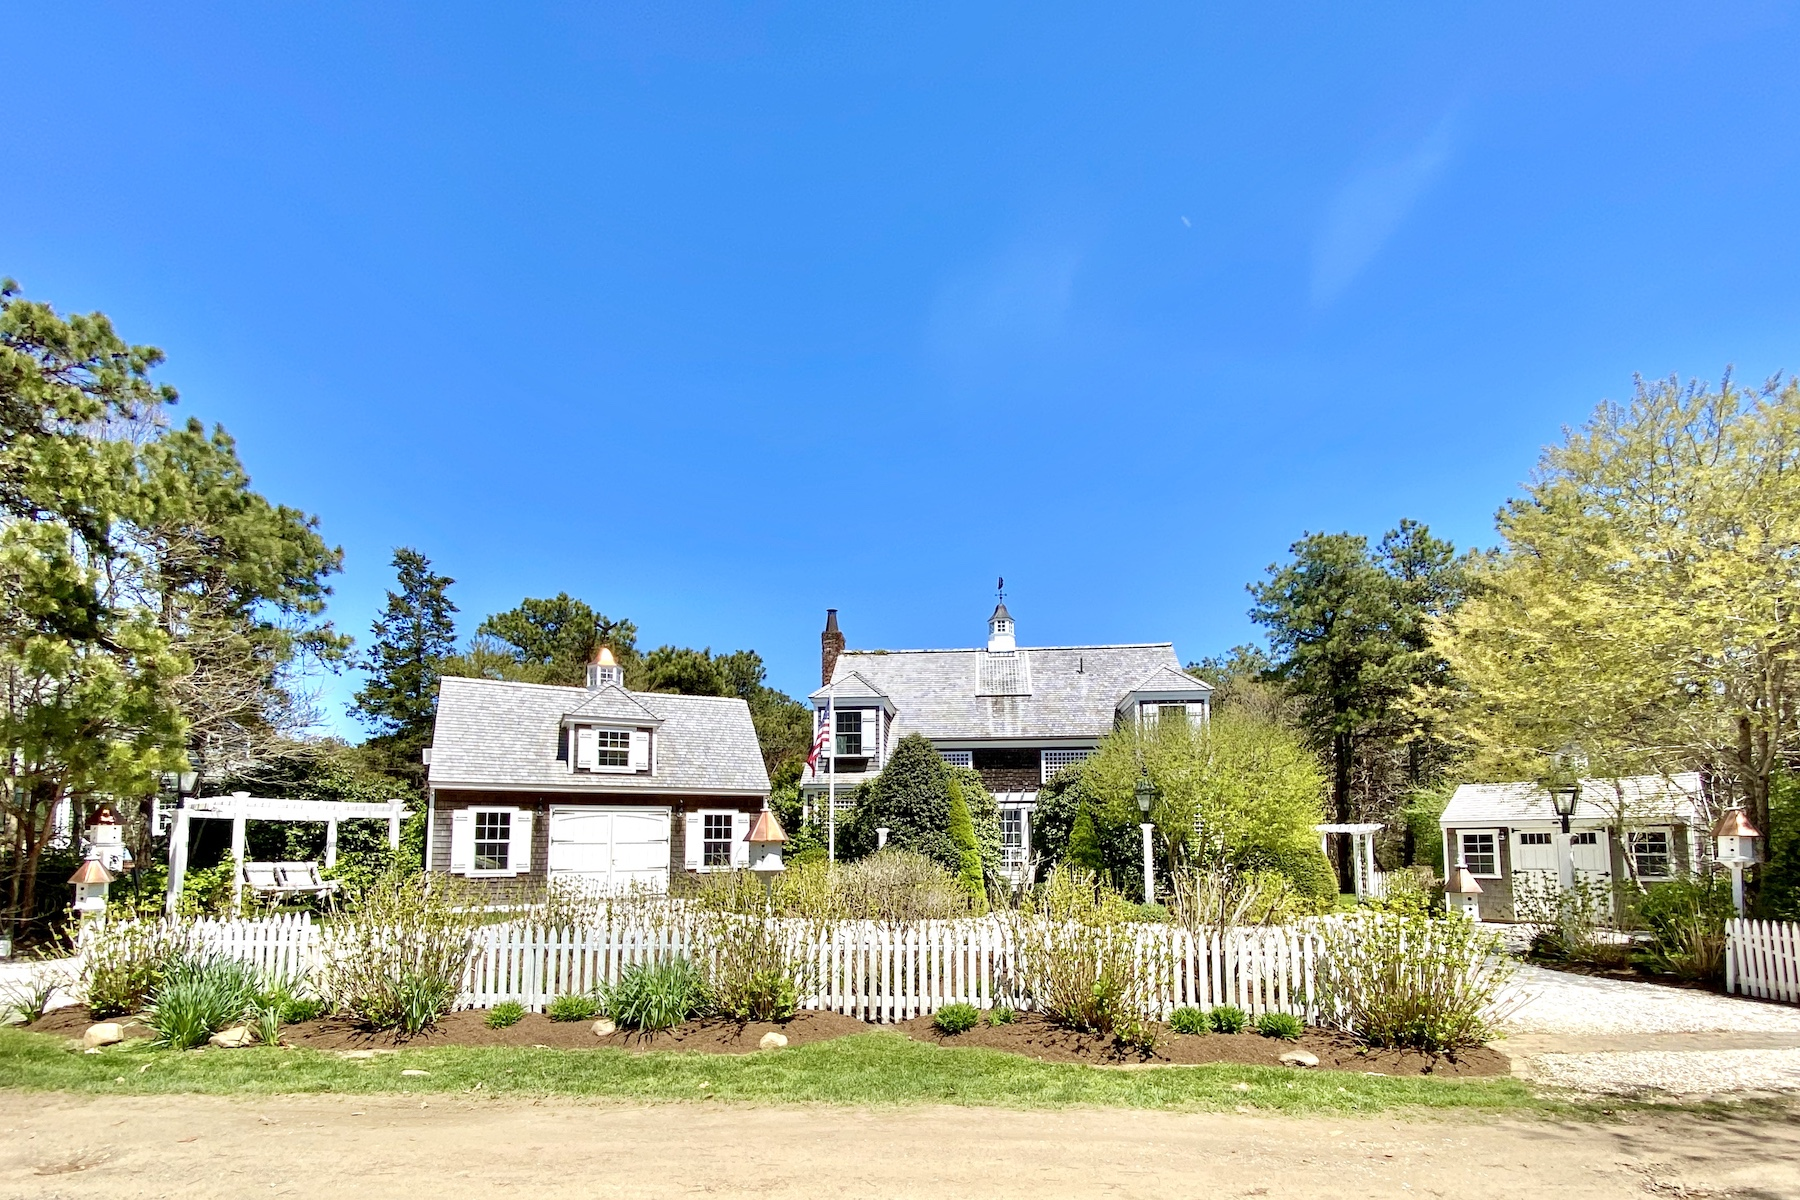 Single Family Homes for Active at Katama Beach House 30 Pradas Way Edgartown, Massachusetts 02539 United States